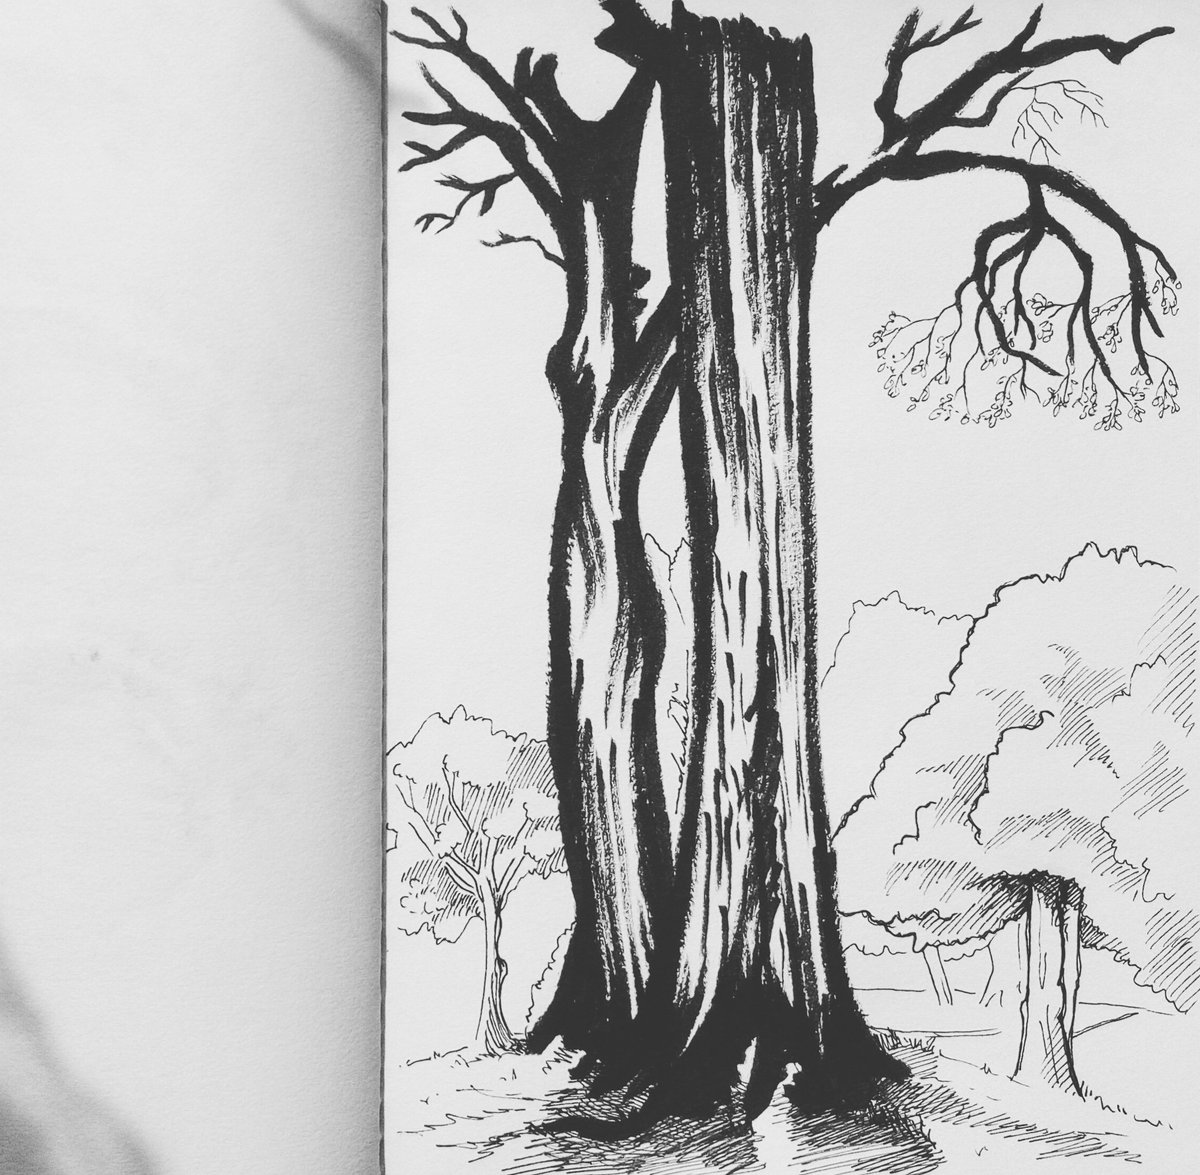 Trees 🌳 #dailyart #dailyillustration #trees #park #drawinthepark #comicbookproject #nature https://t.co/4A6sK0fuqB